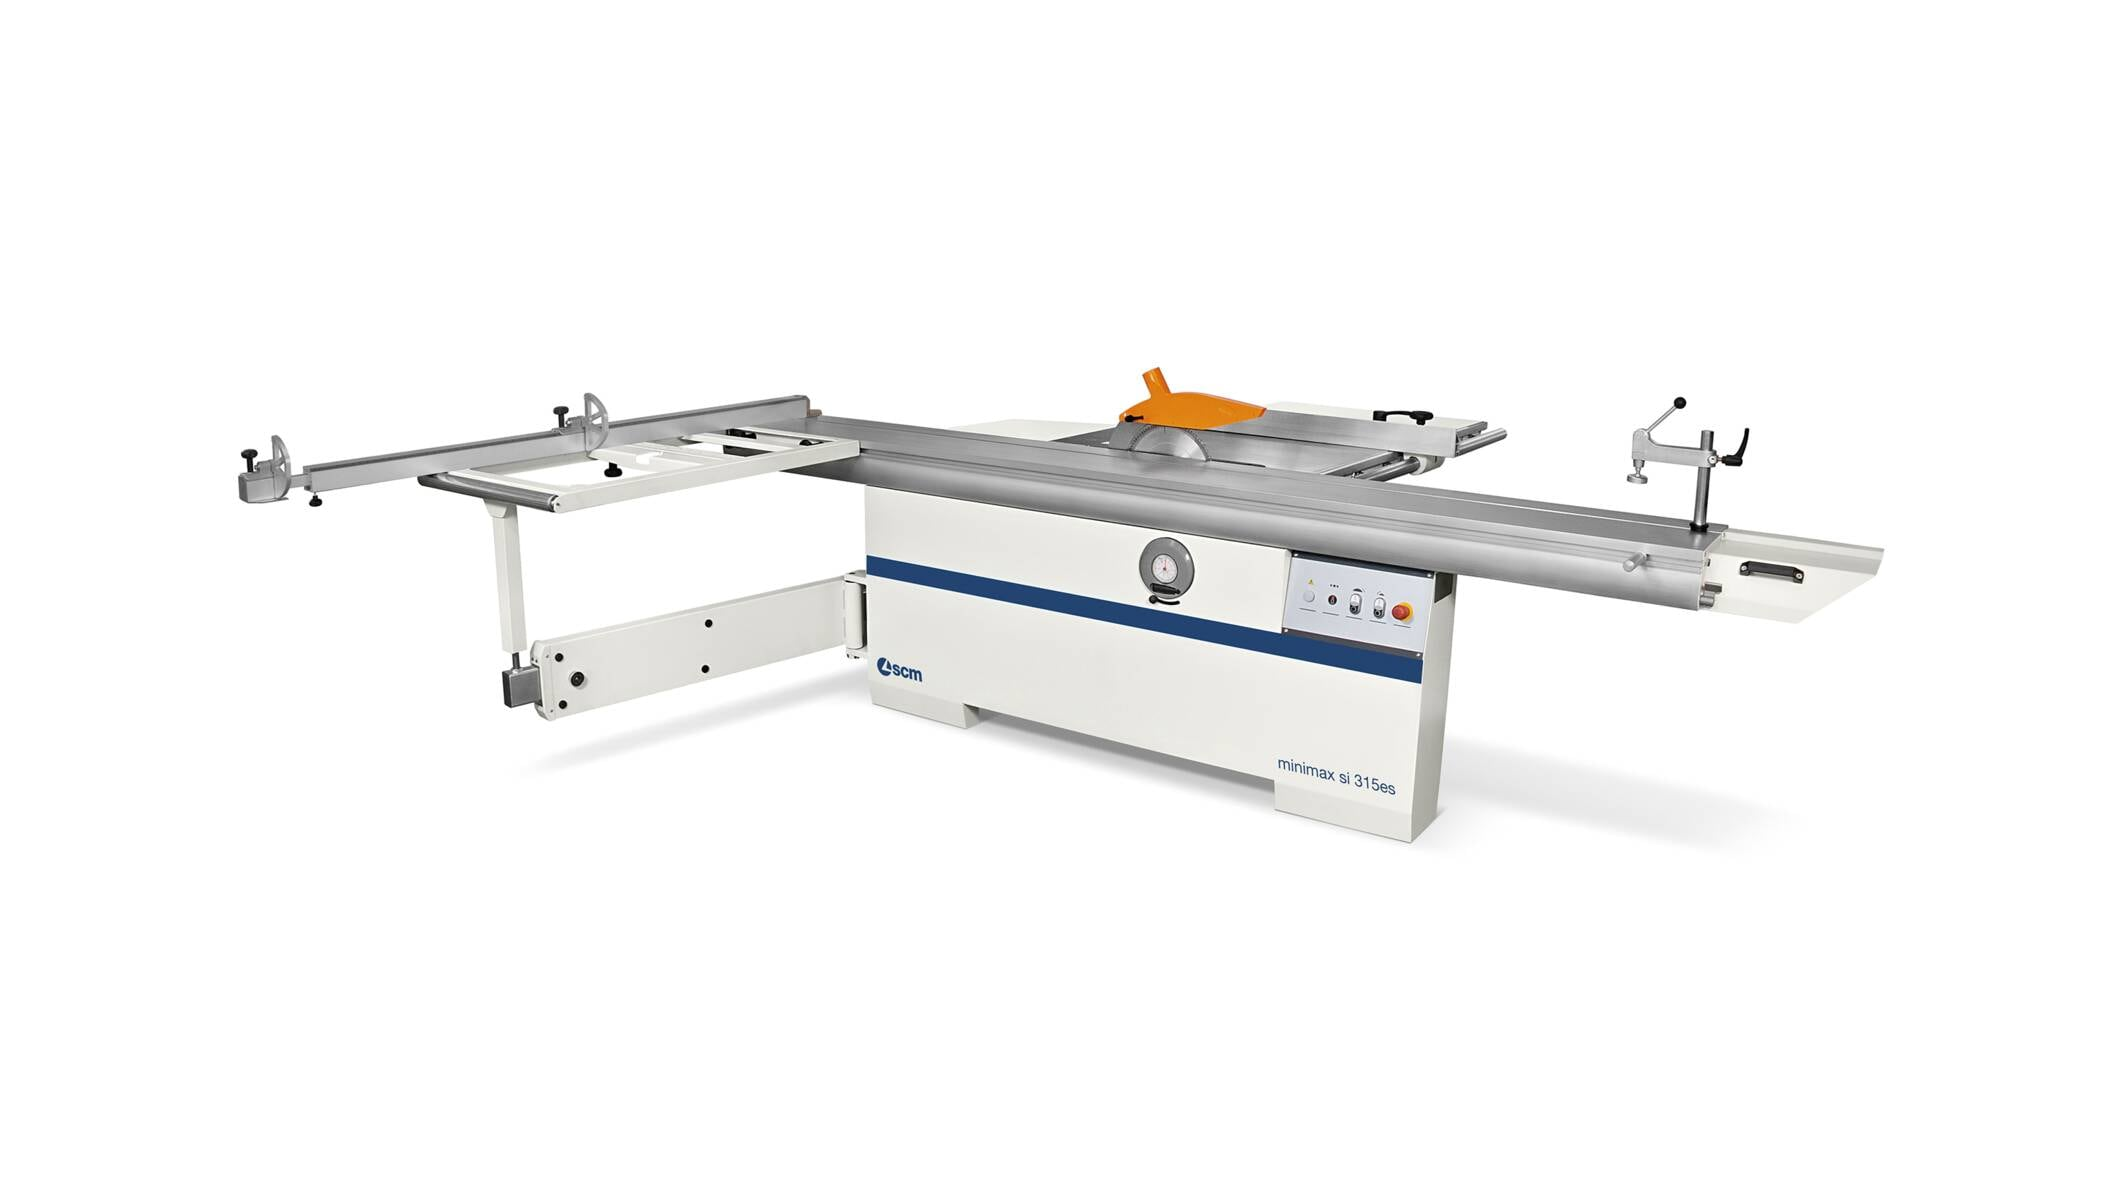 Joinery machines - Sliding table saws - minimax si 315es